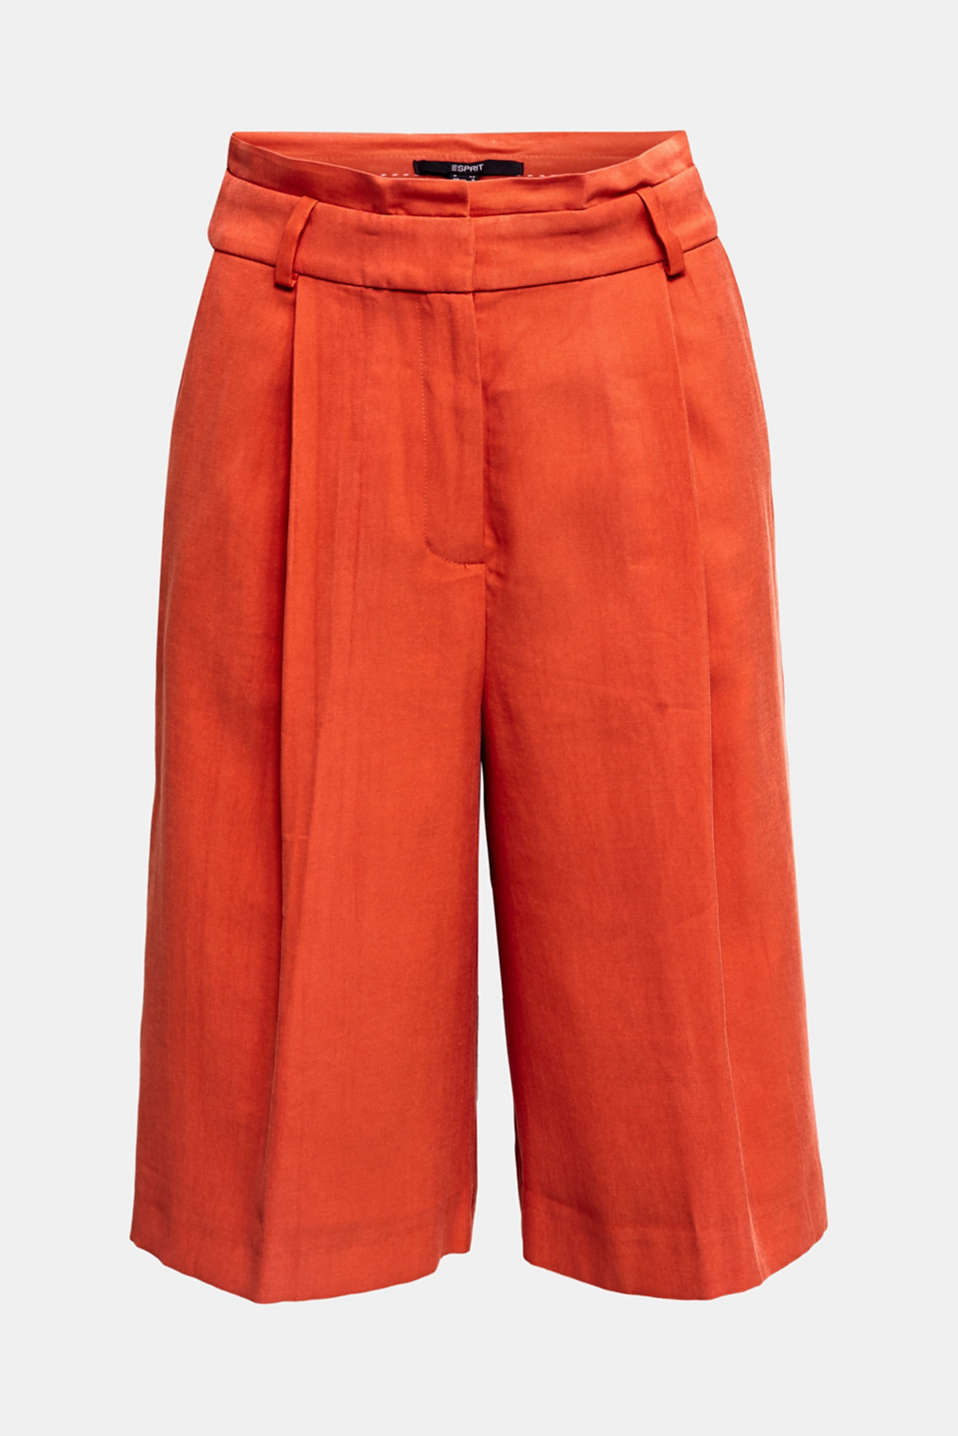 Flowing Bermudas with a wide leg, RED ORANGE, detail image number 7